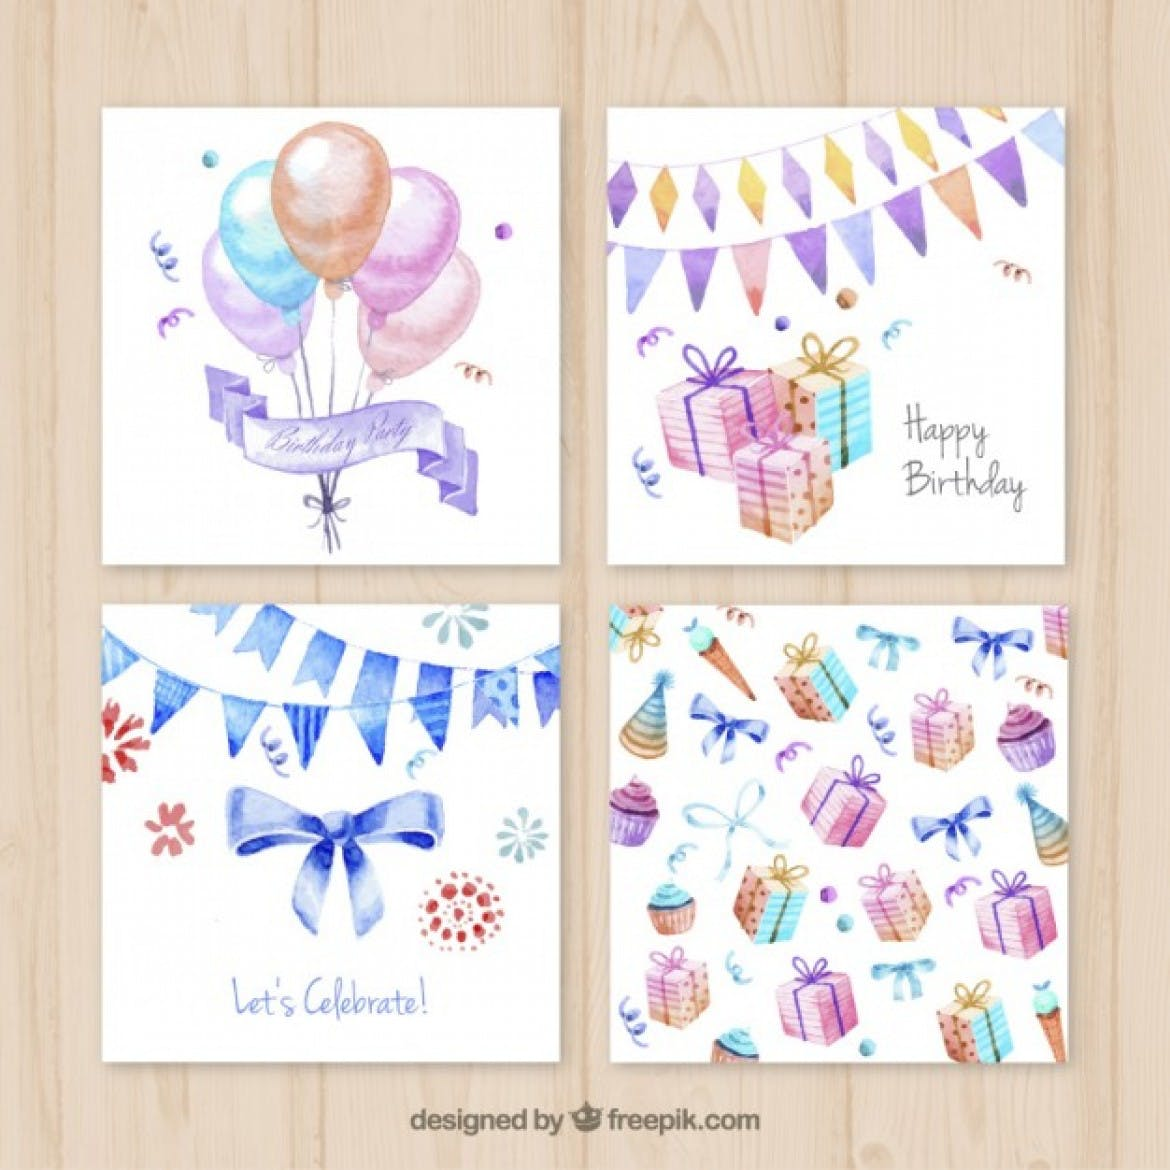 wpid-watercolor-birthday-cards_23-2147522743-1170x1170